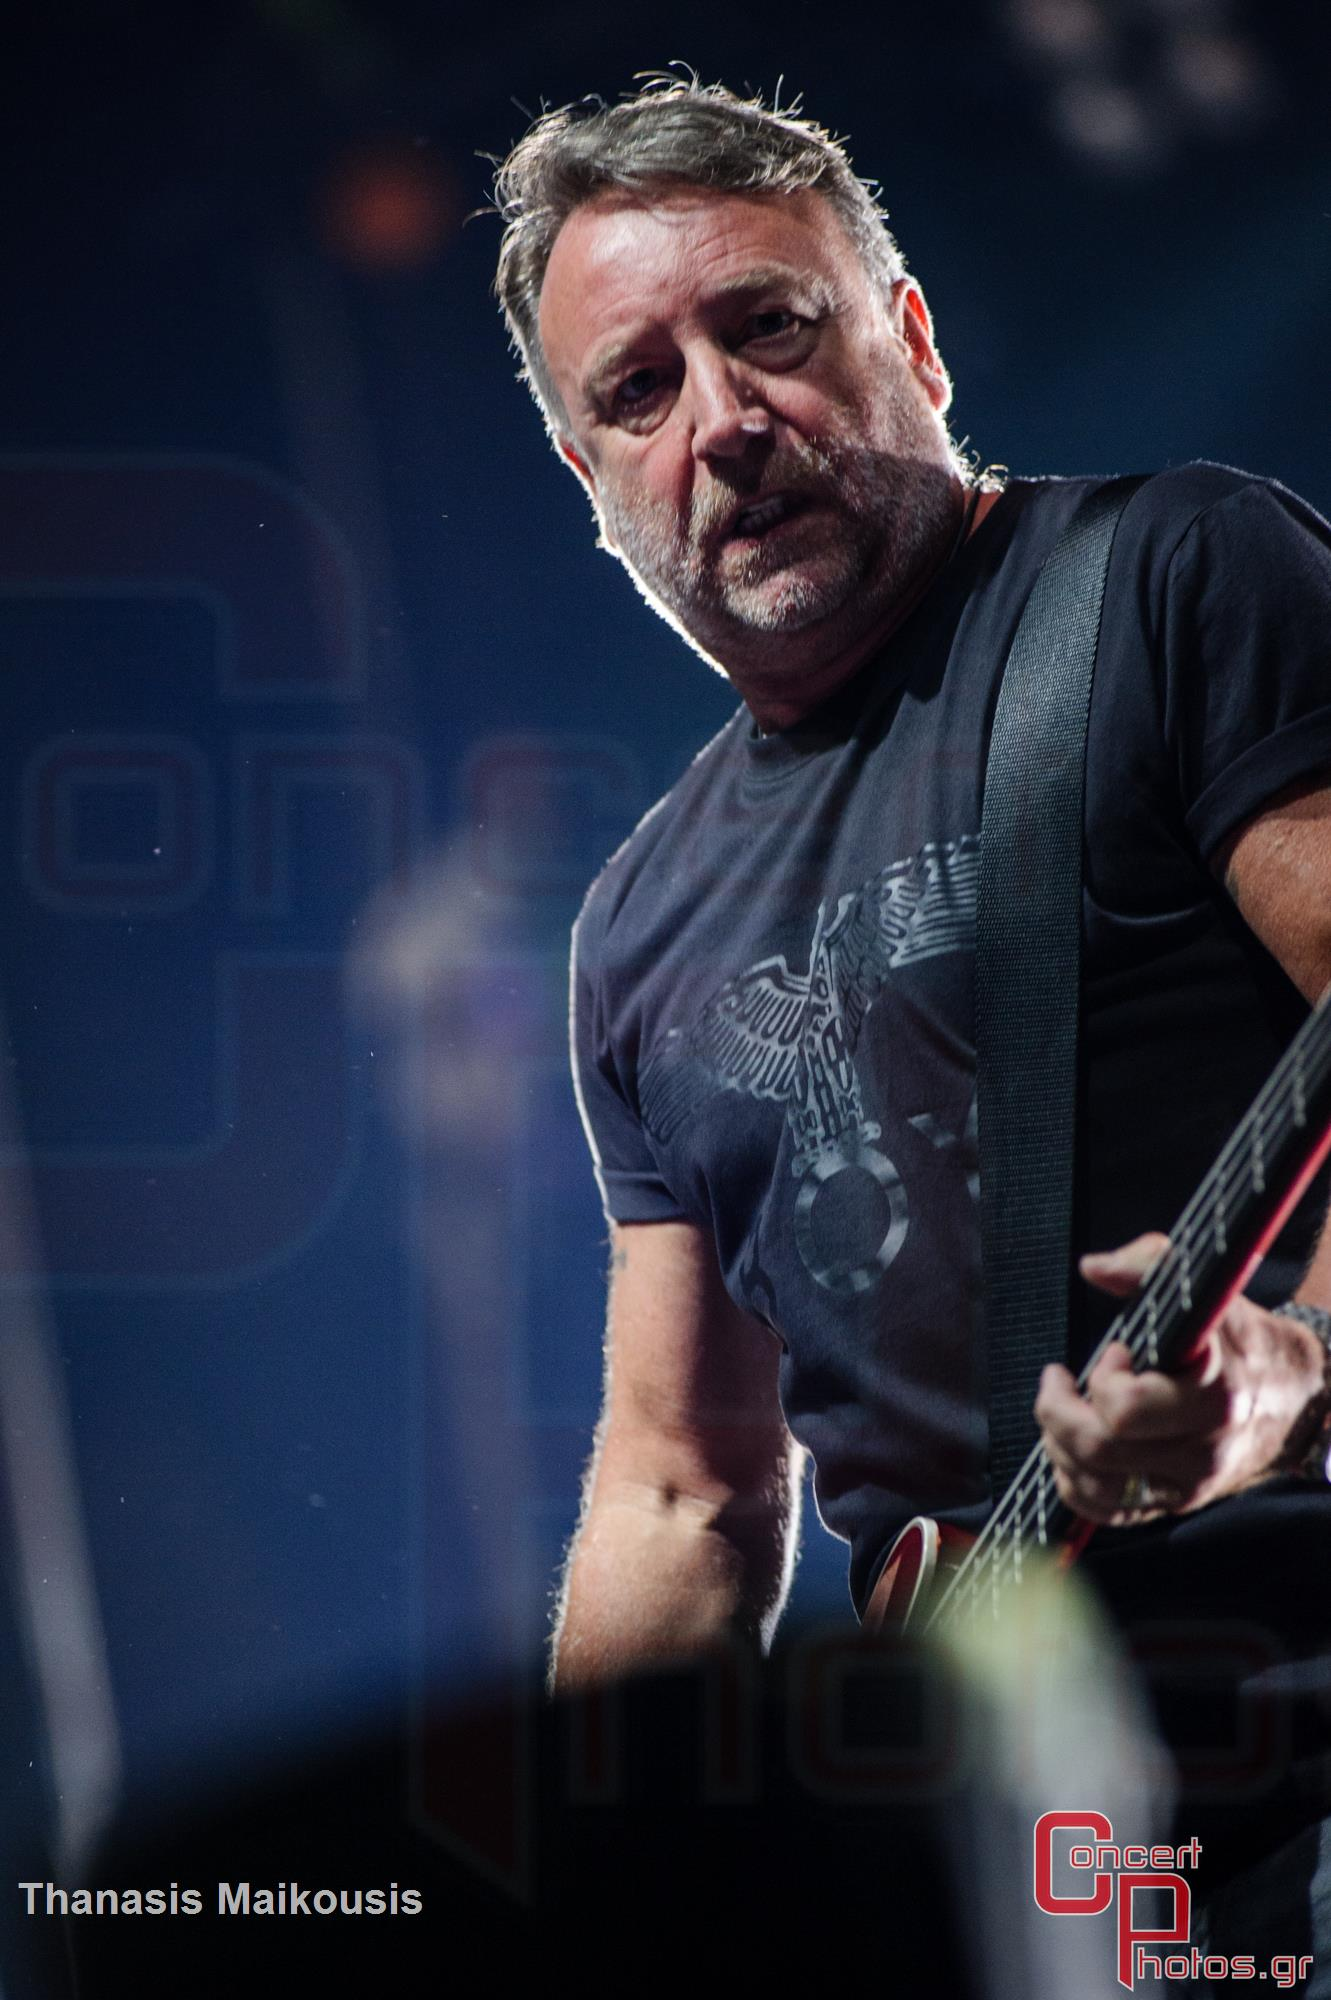 Peter Hook & The Light -Peter Hook & The Light Ejekt 2013 photographer: Thanasis Maikousis - concertphotos_-9285